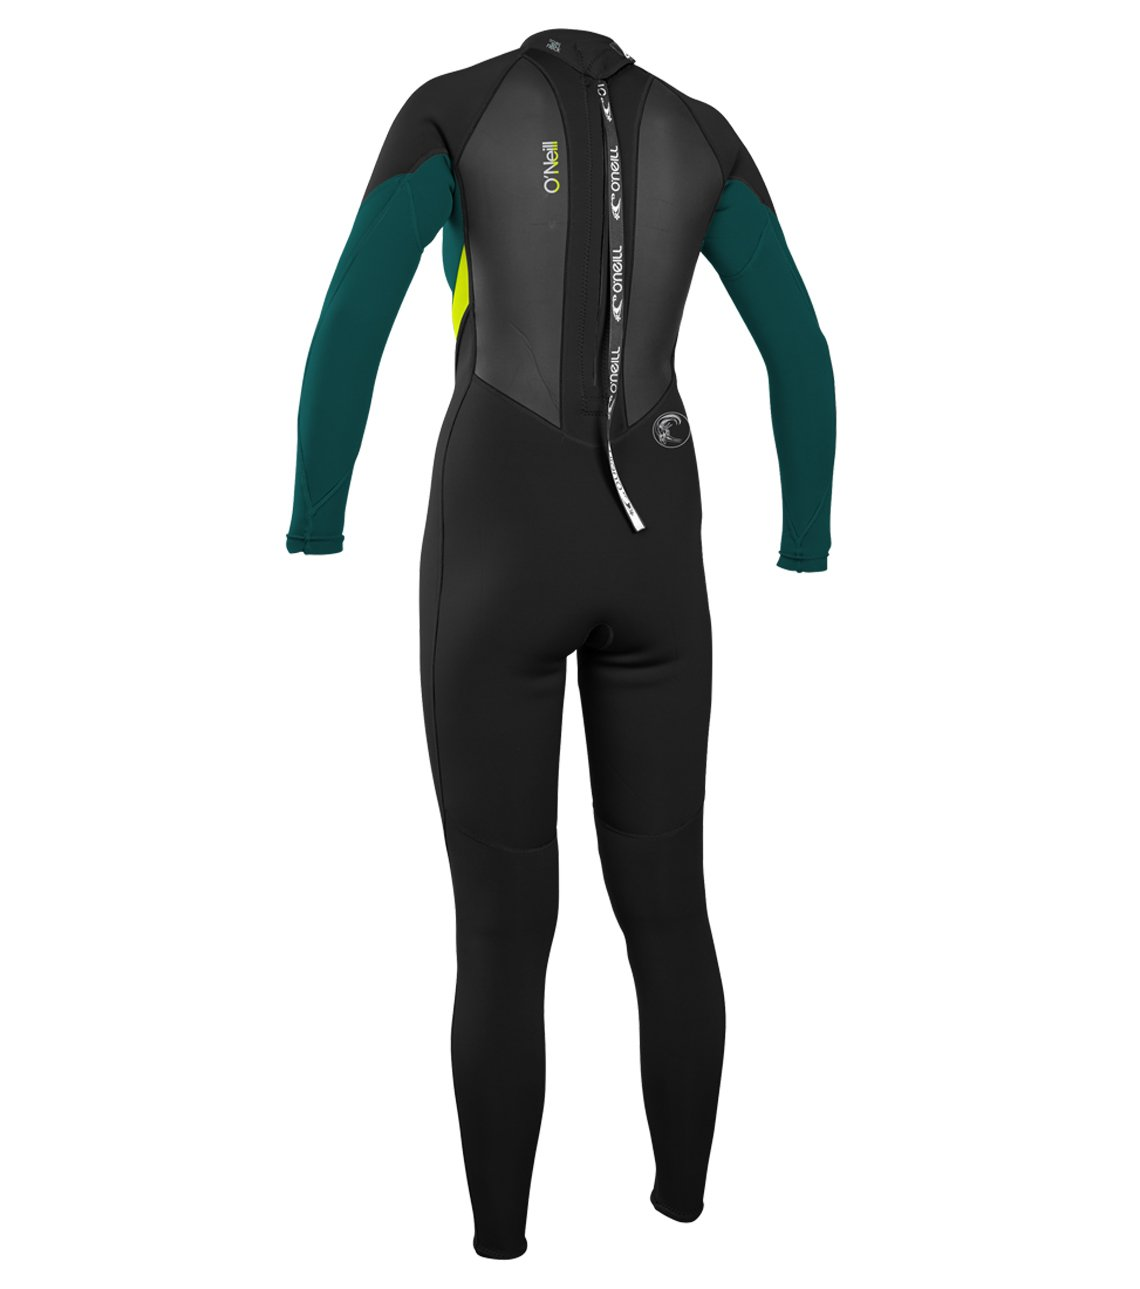 bb09d73ccf Amazon.com   O Neill Wetsuits Womens 3 2 mm Bahia Full Wetsuit   Sports    Outdoors